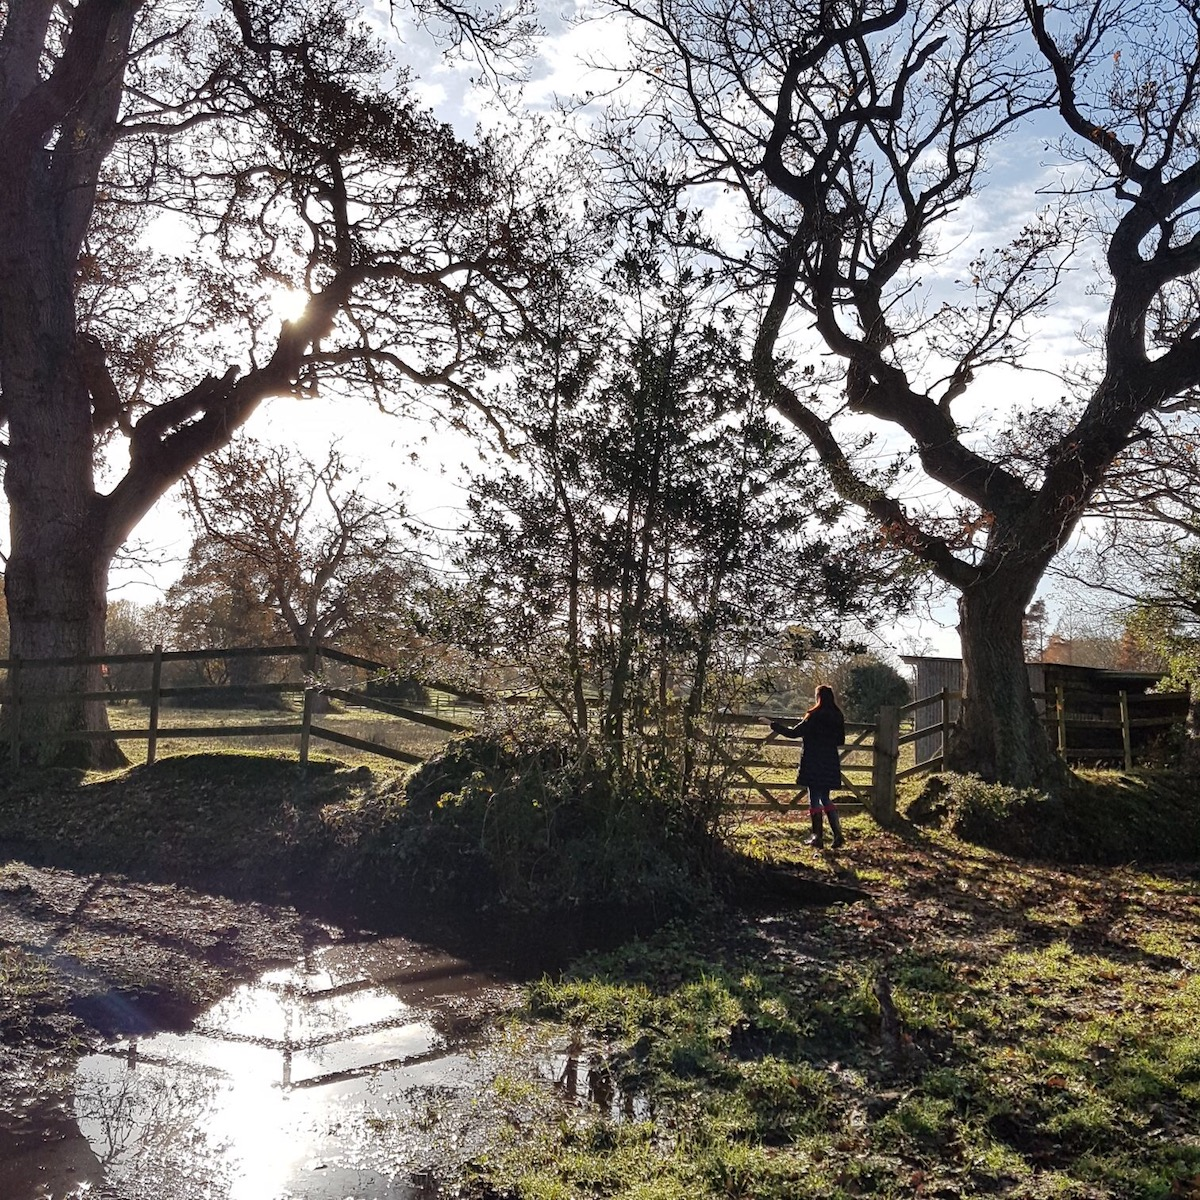 Sunny Day in New Forest